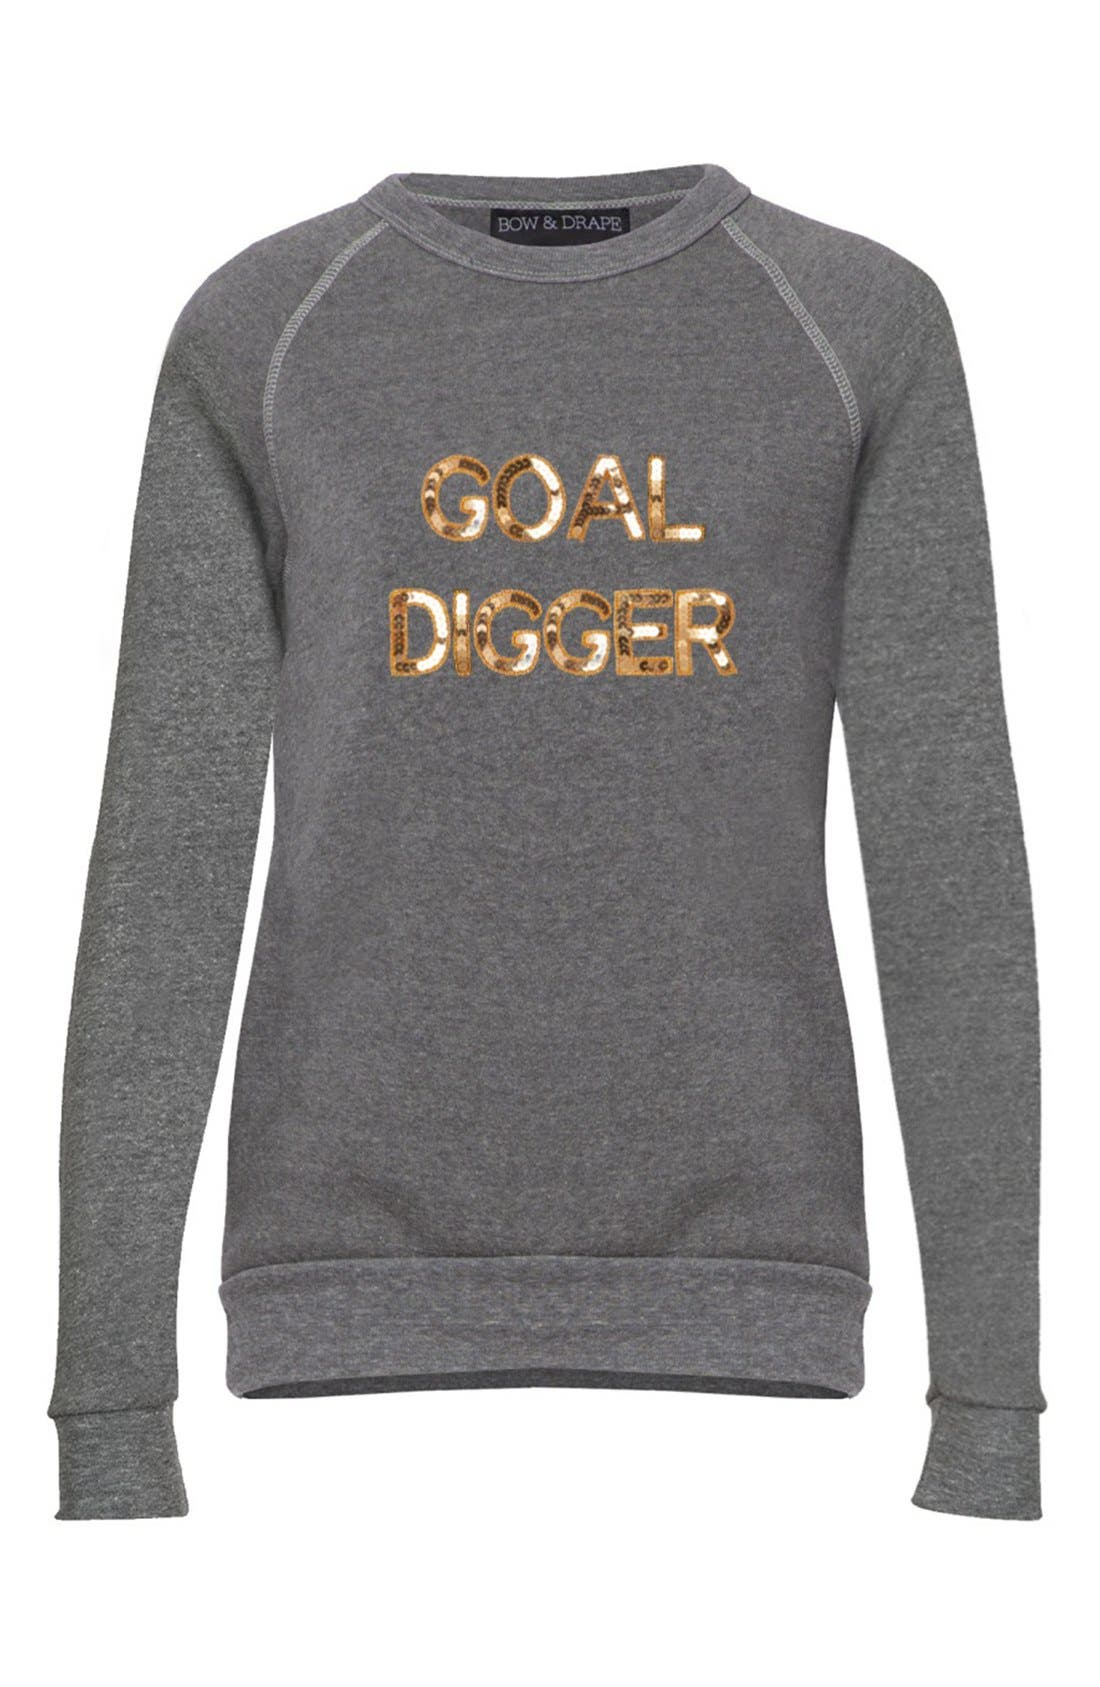 'Goal Digger' Sweatshirt,                             Alternate thumbnail 3, color,                             021